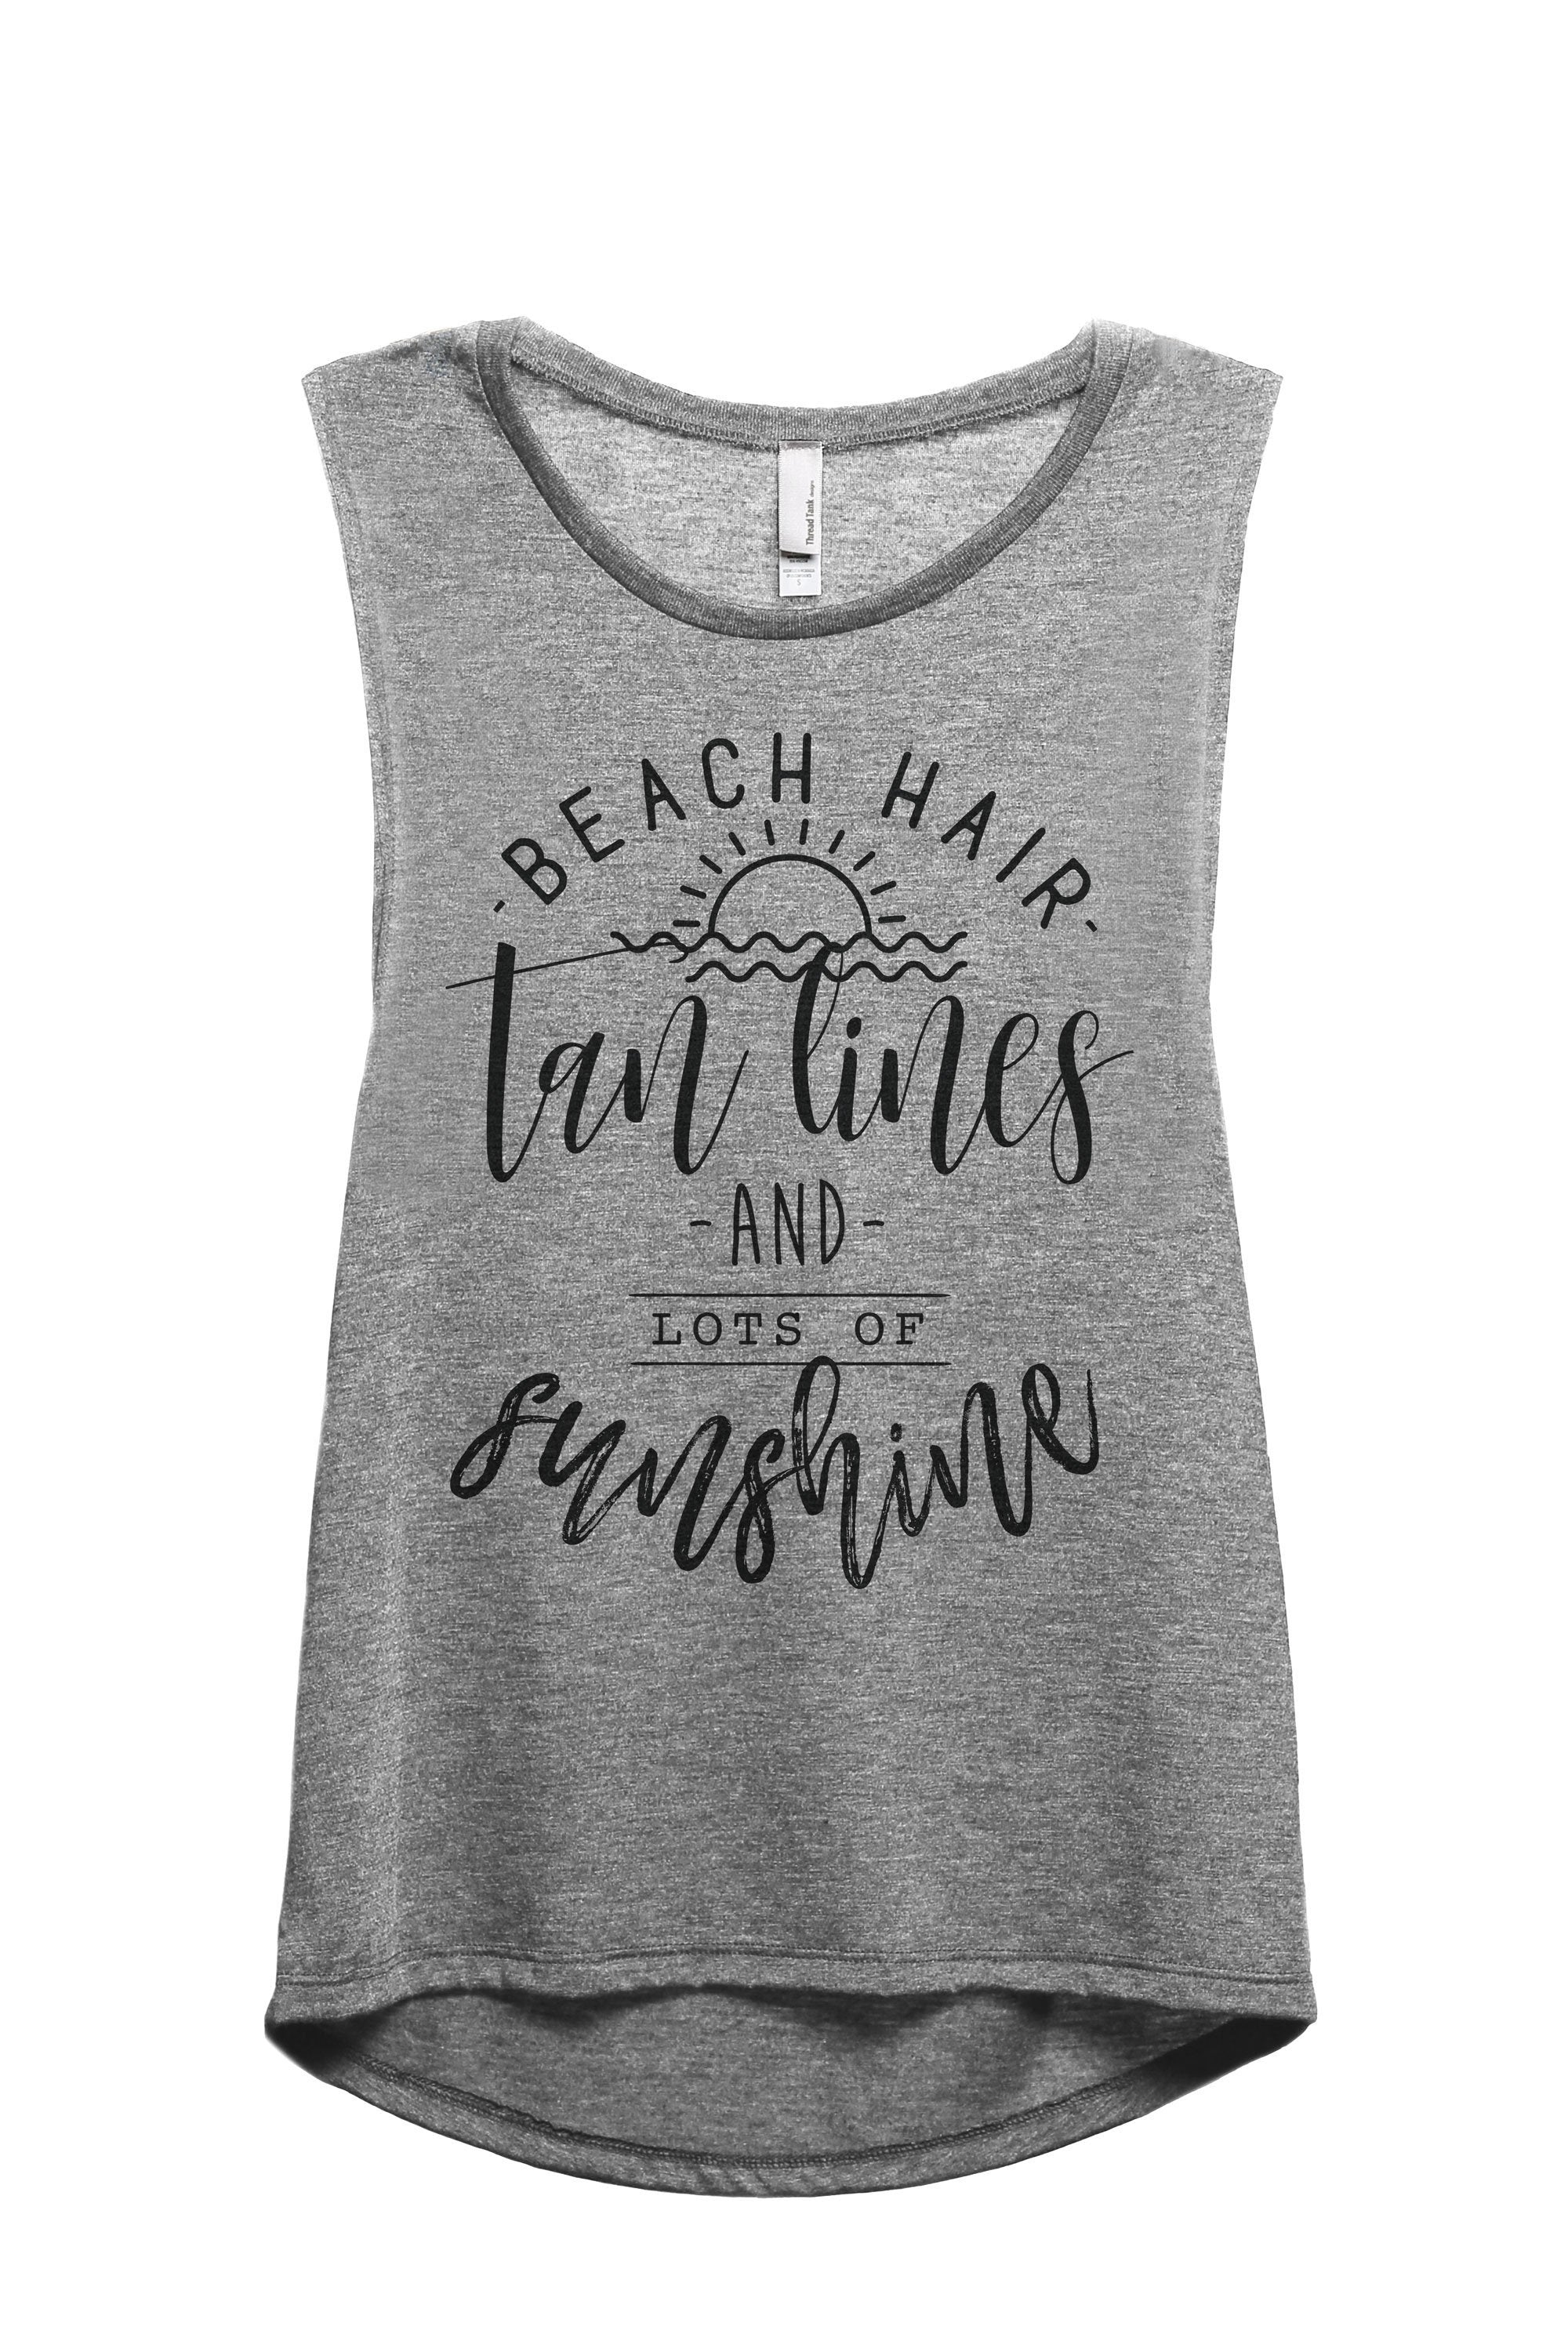 Beach Hair Tan Lines Sunshine Women's Relaxed Muscle Tank Tee Heather Grey